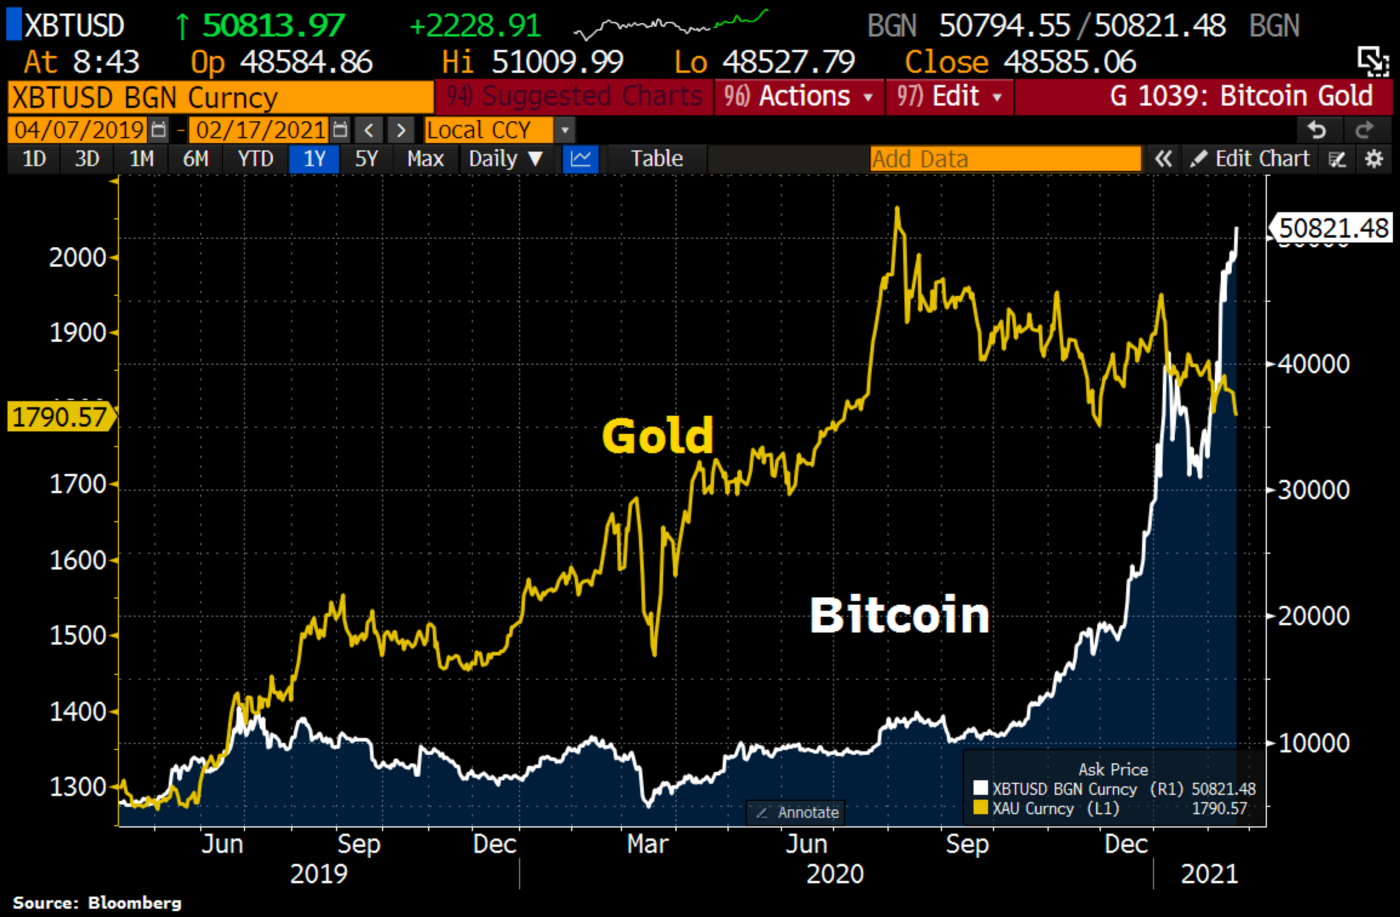 Chart showing the bitcoin price against the price of gold. It shows the bitcoin price increasing whilst gold's price is decreasing.